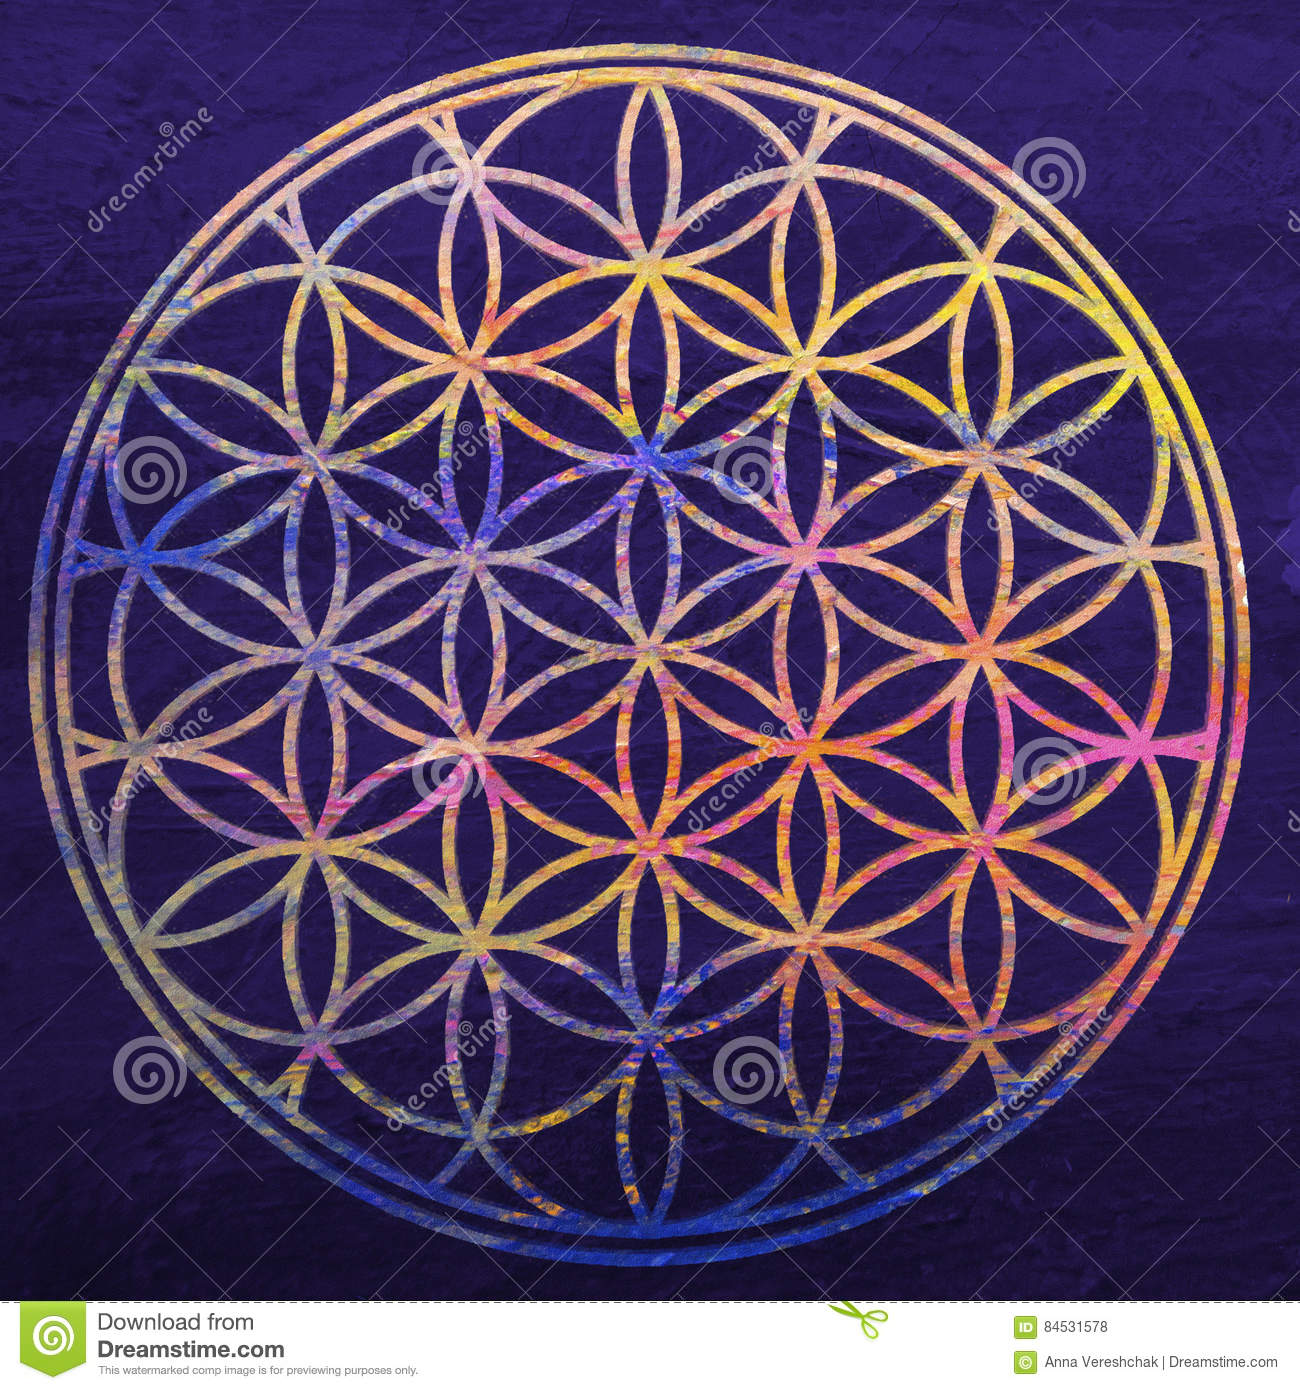 Spiritual meaning of the Flower of Life - Flower of Life